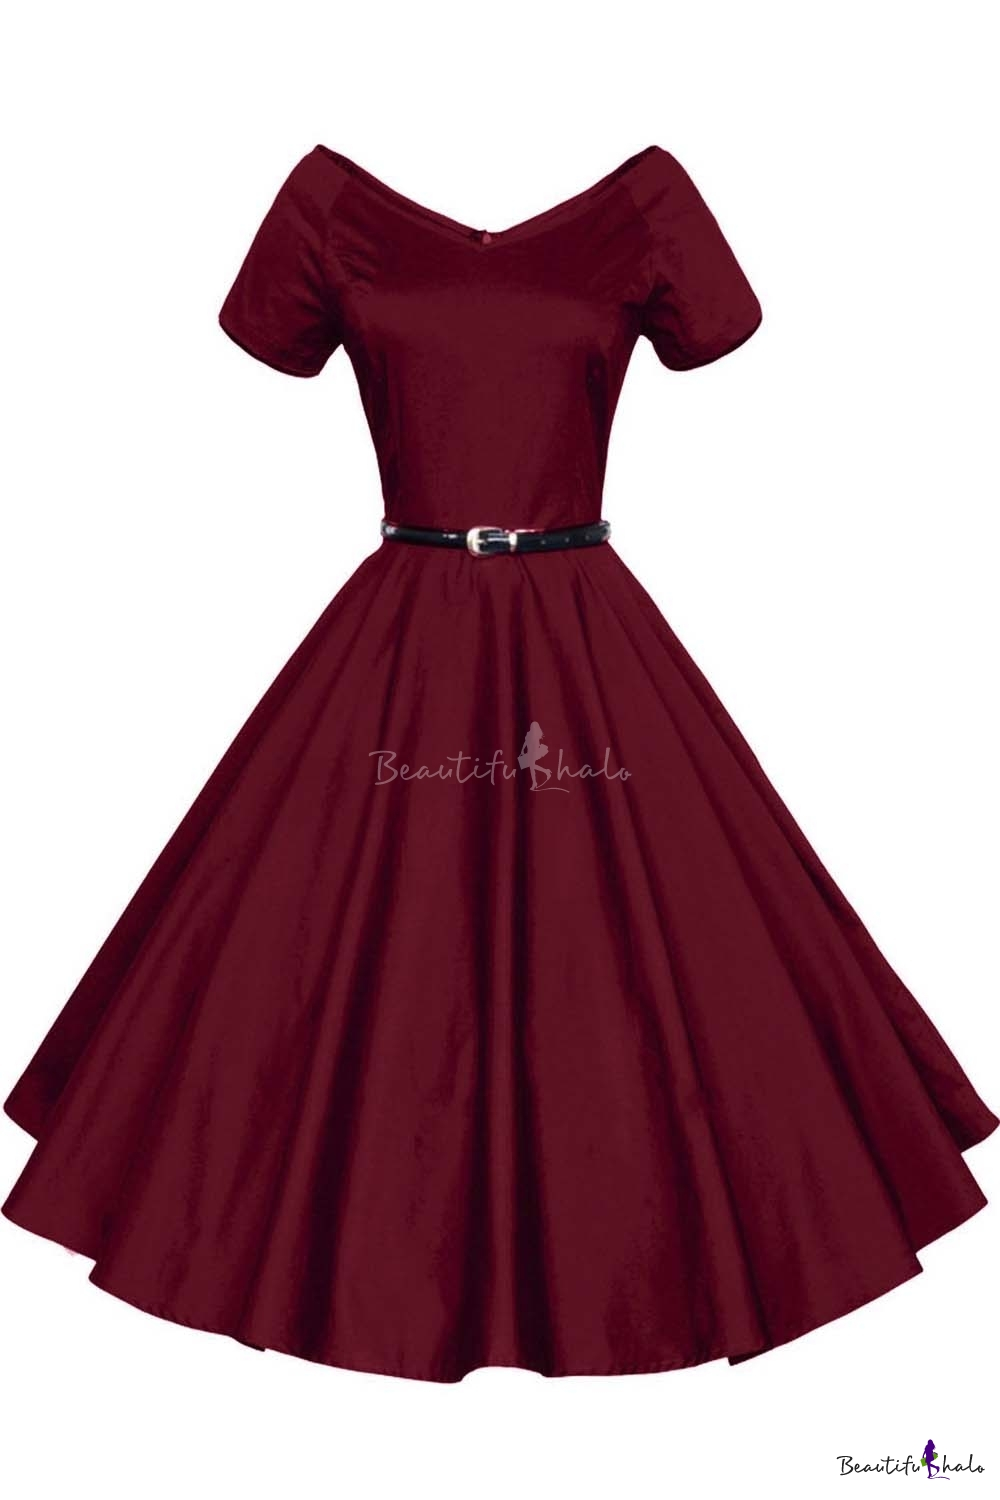 Women 1950s V Neck Vintage Rockabilly Swing Evening Party